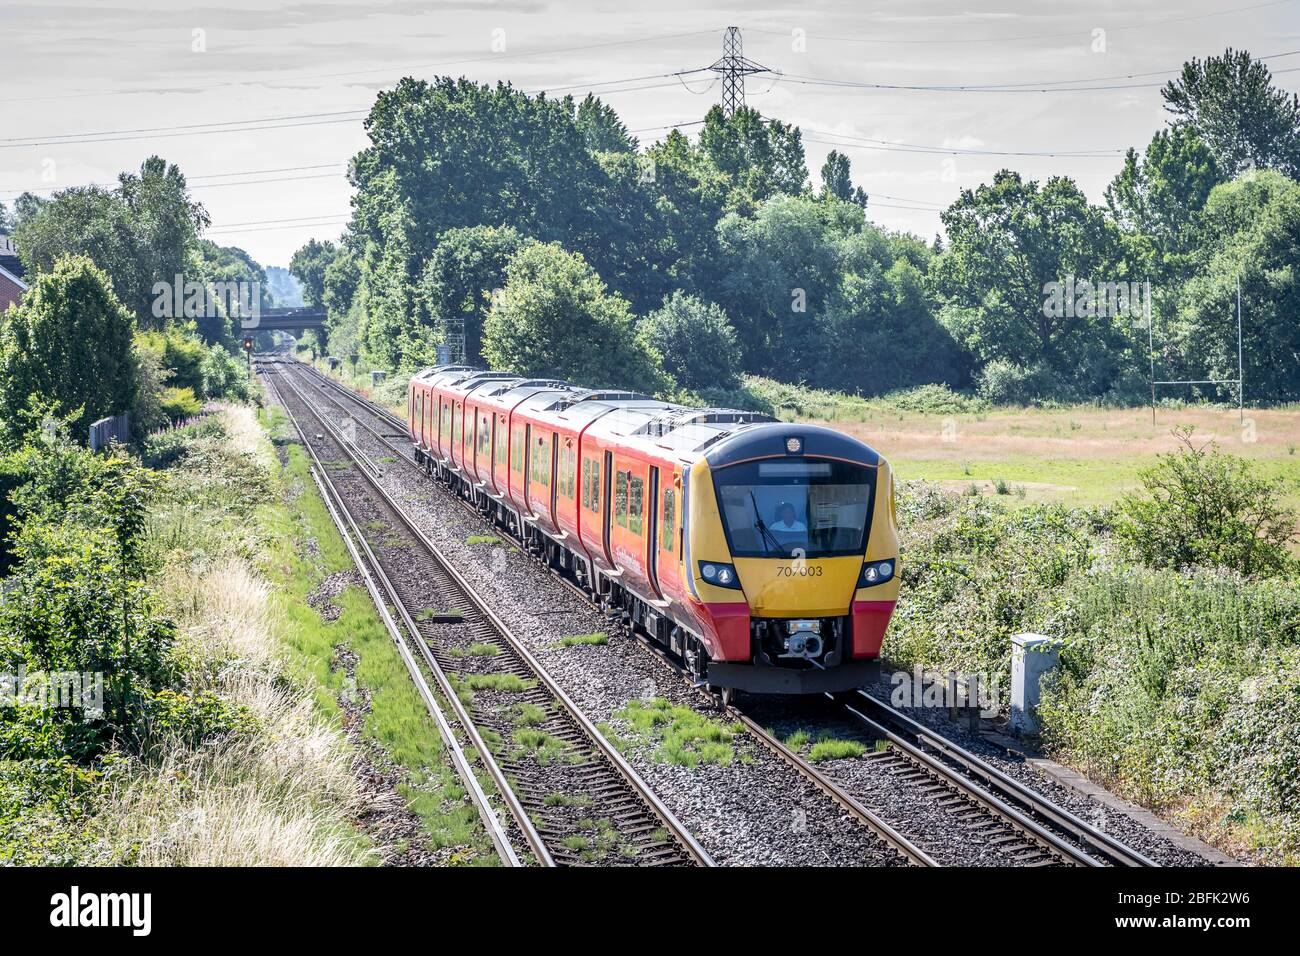 South West Tains Desiro City No. 707003 approaches Chertsey station, Surrey, England, UK Stock Photo